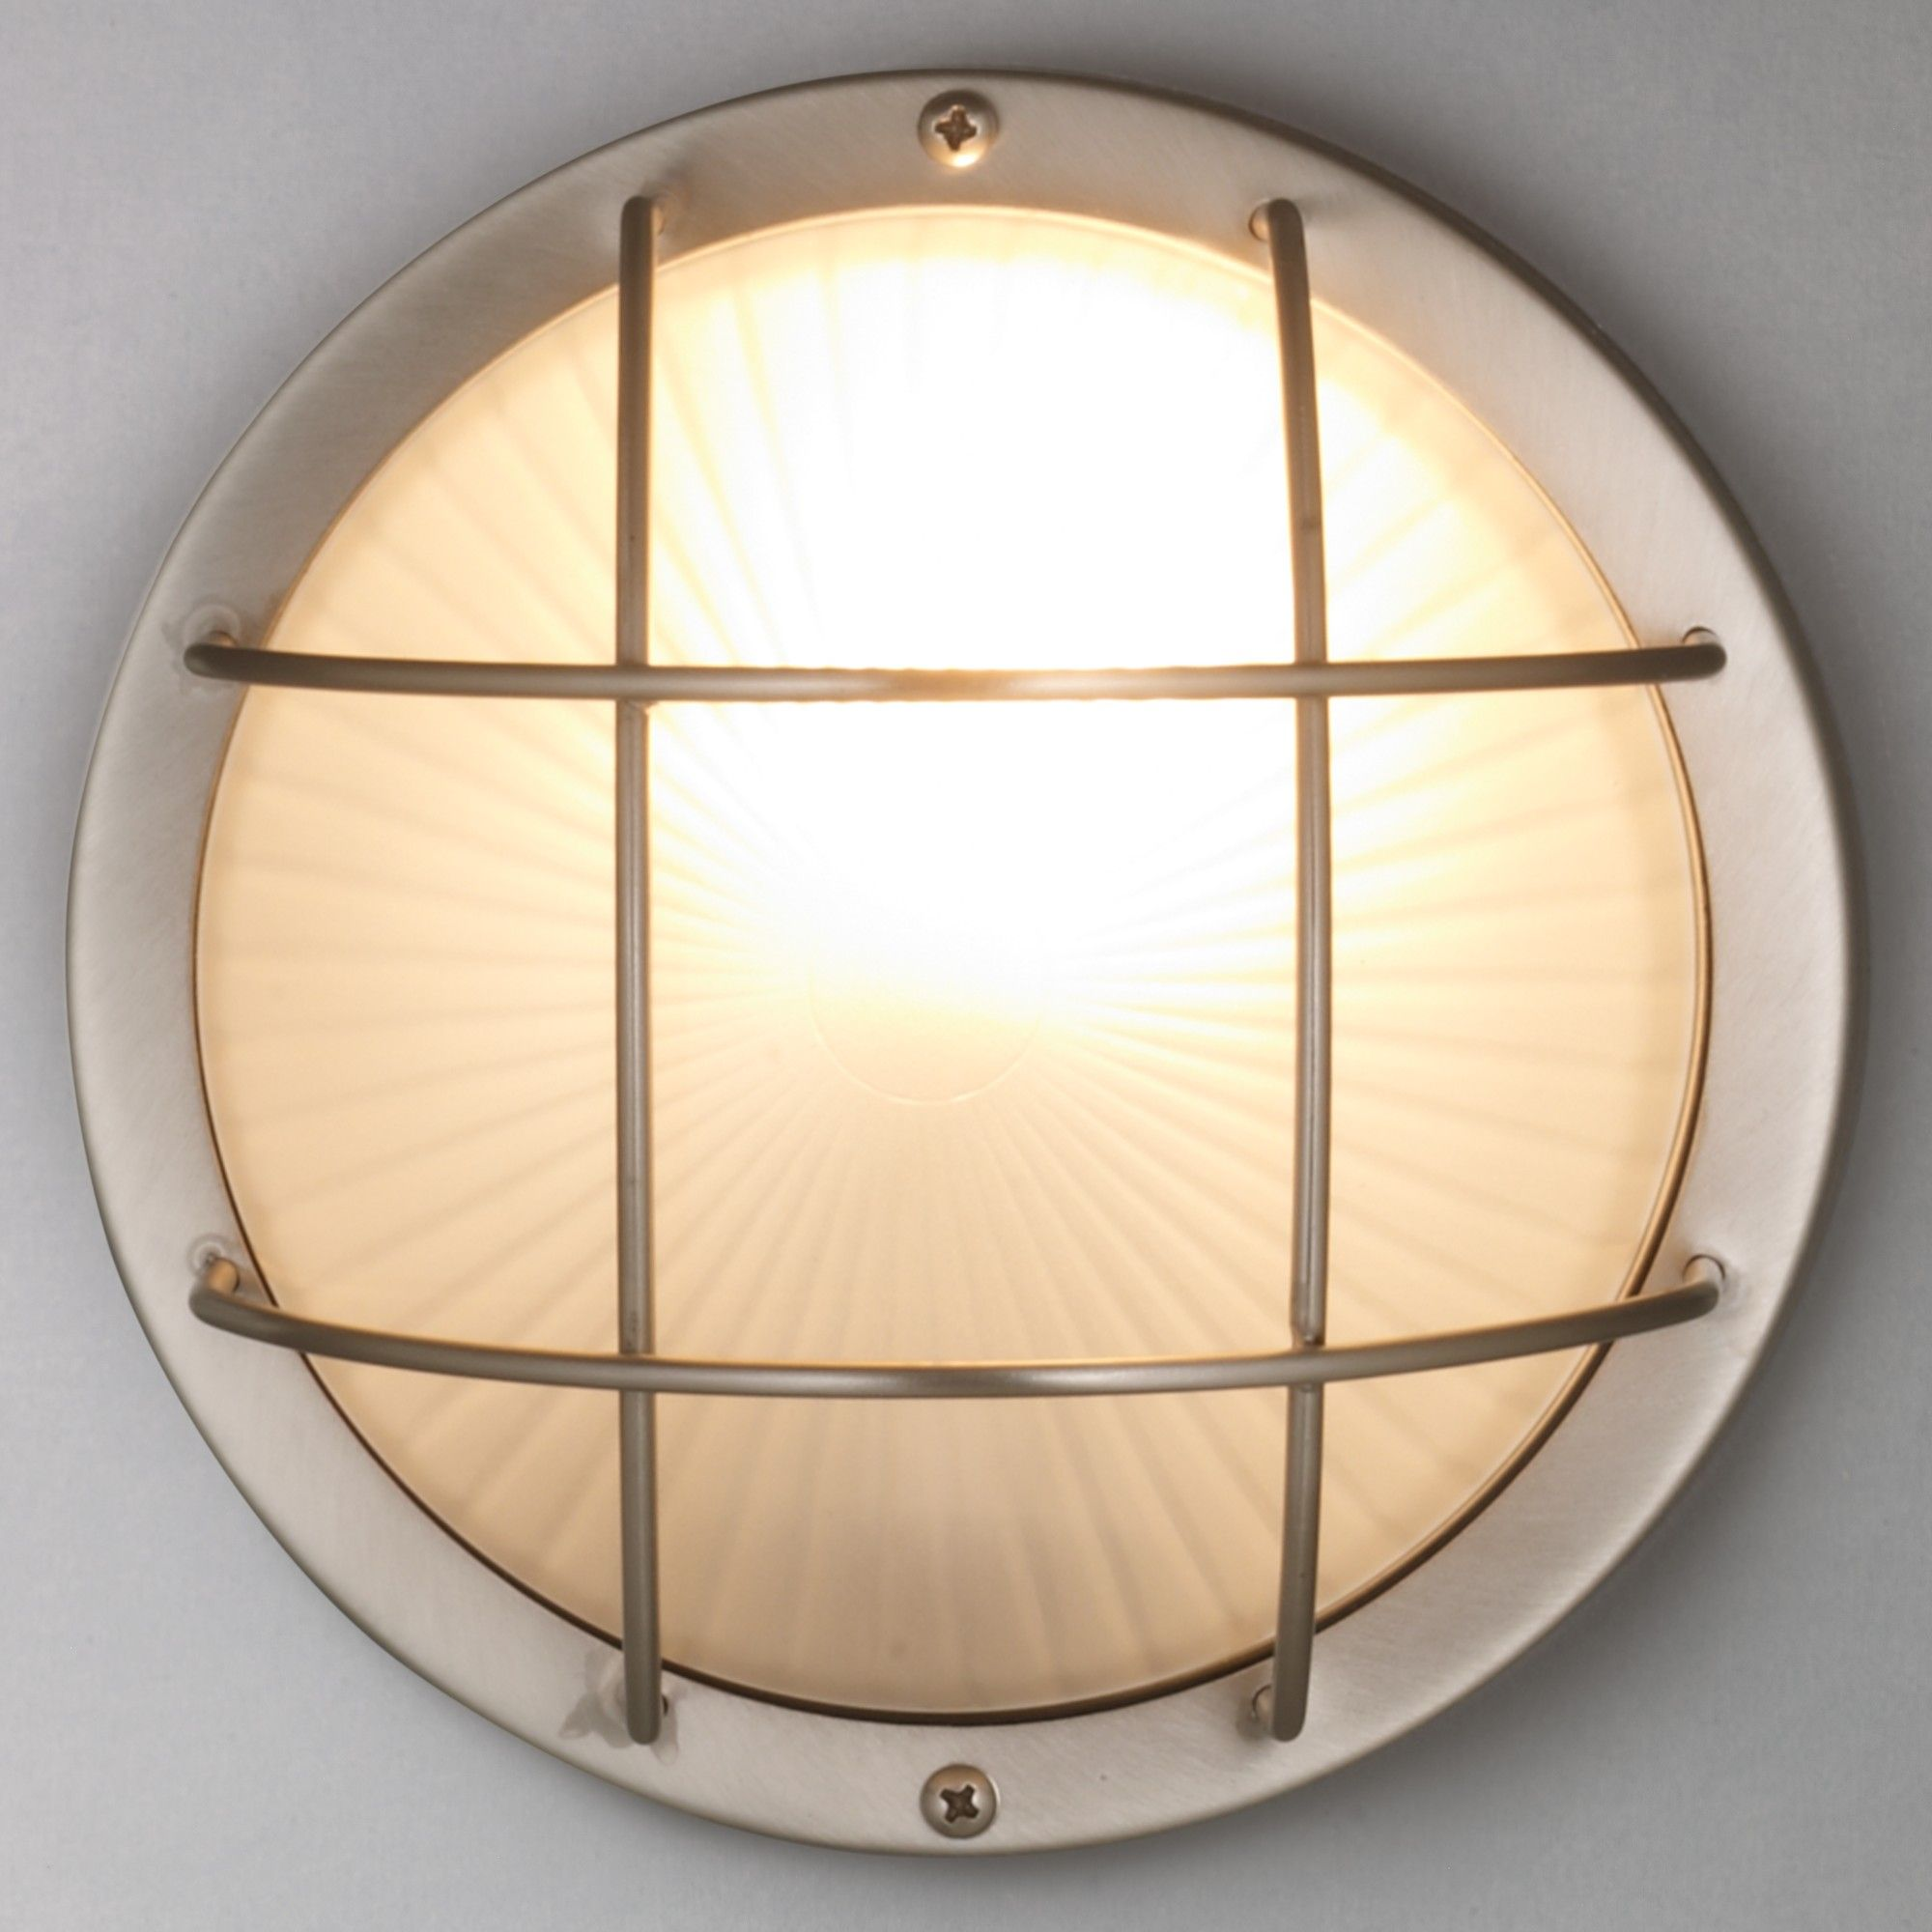 Porch Light John Lewis: John Lewis Milo Outdoor Wall Light